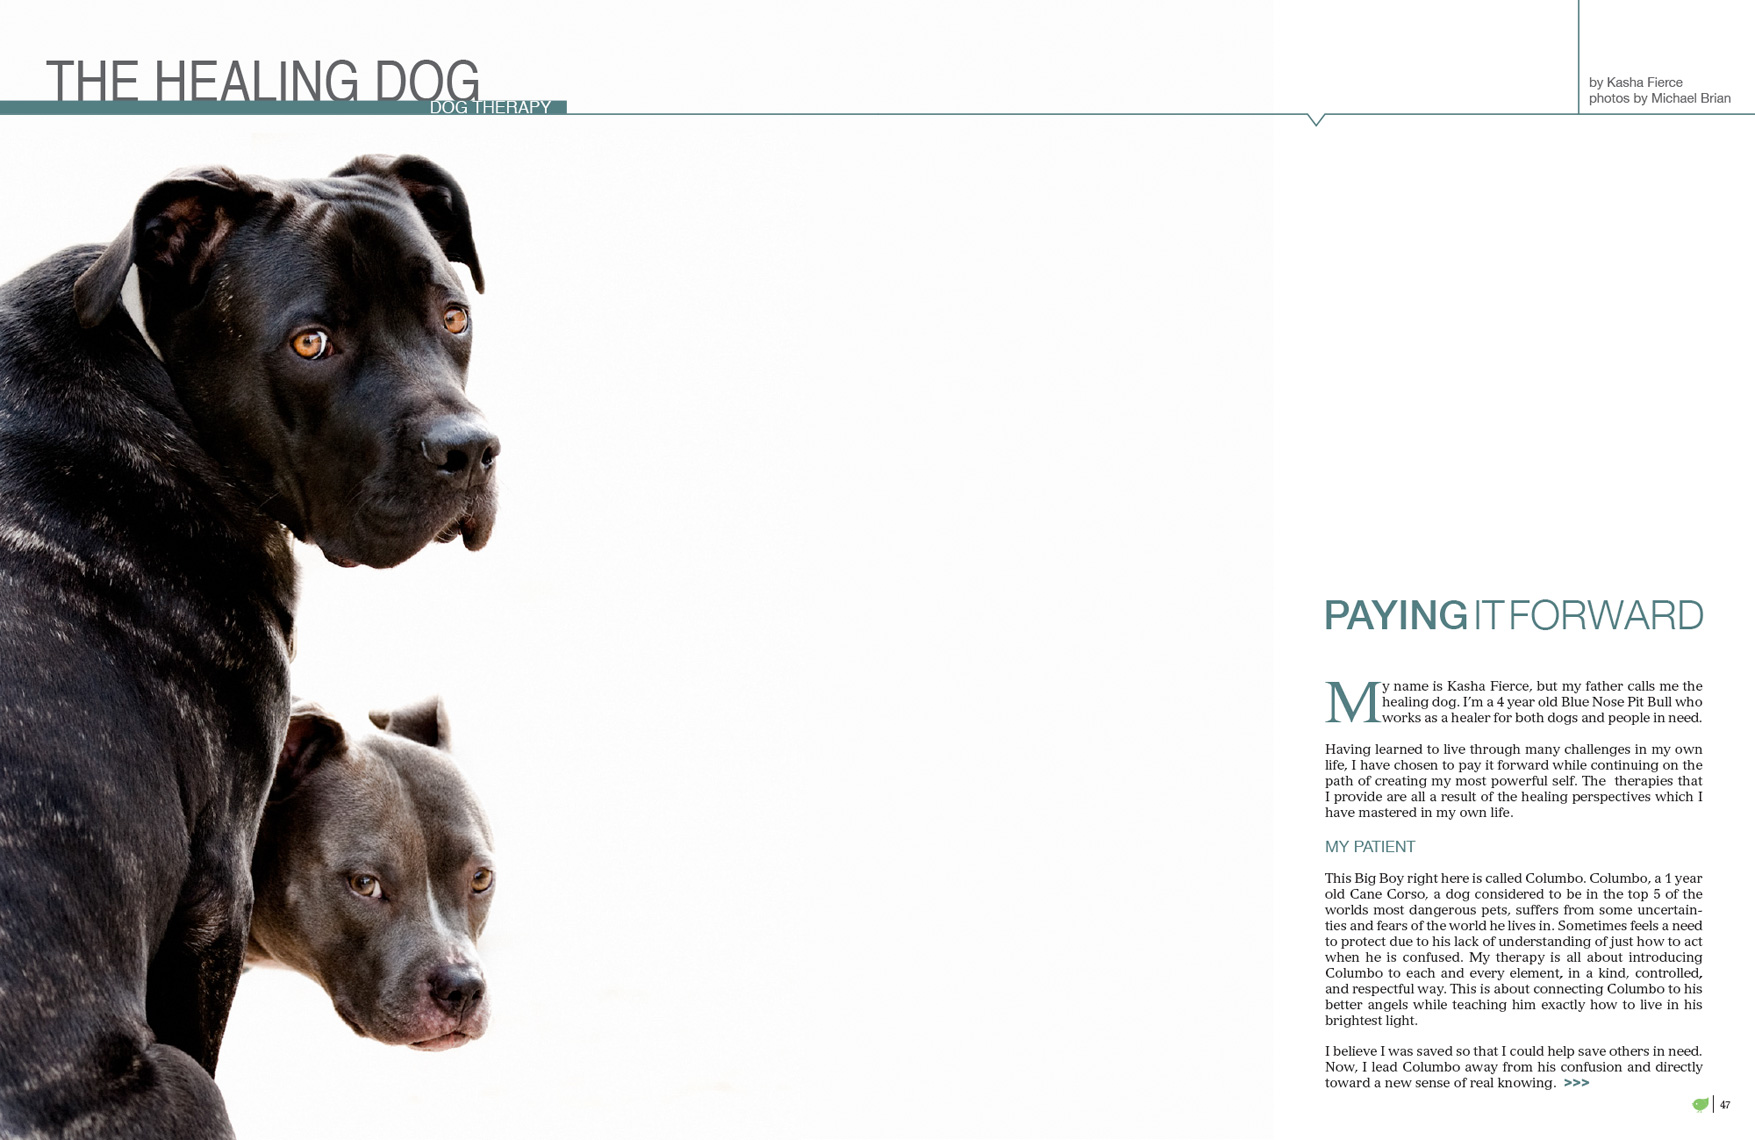 Los Angeles Dog Photography, Michael Brian, Dog Therapy, The healing Dog, paying it forward